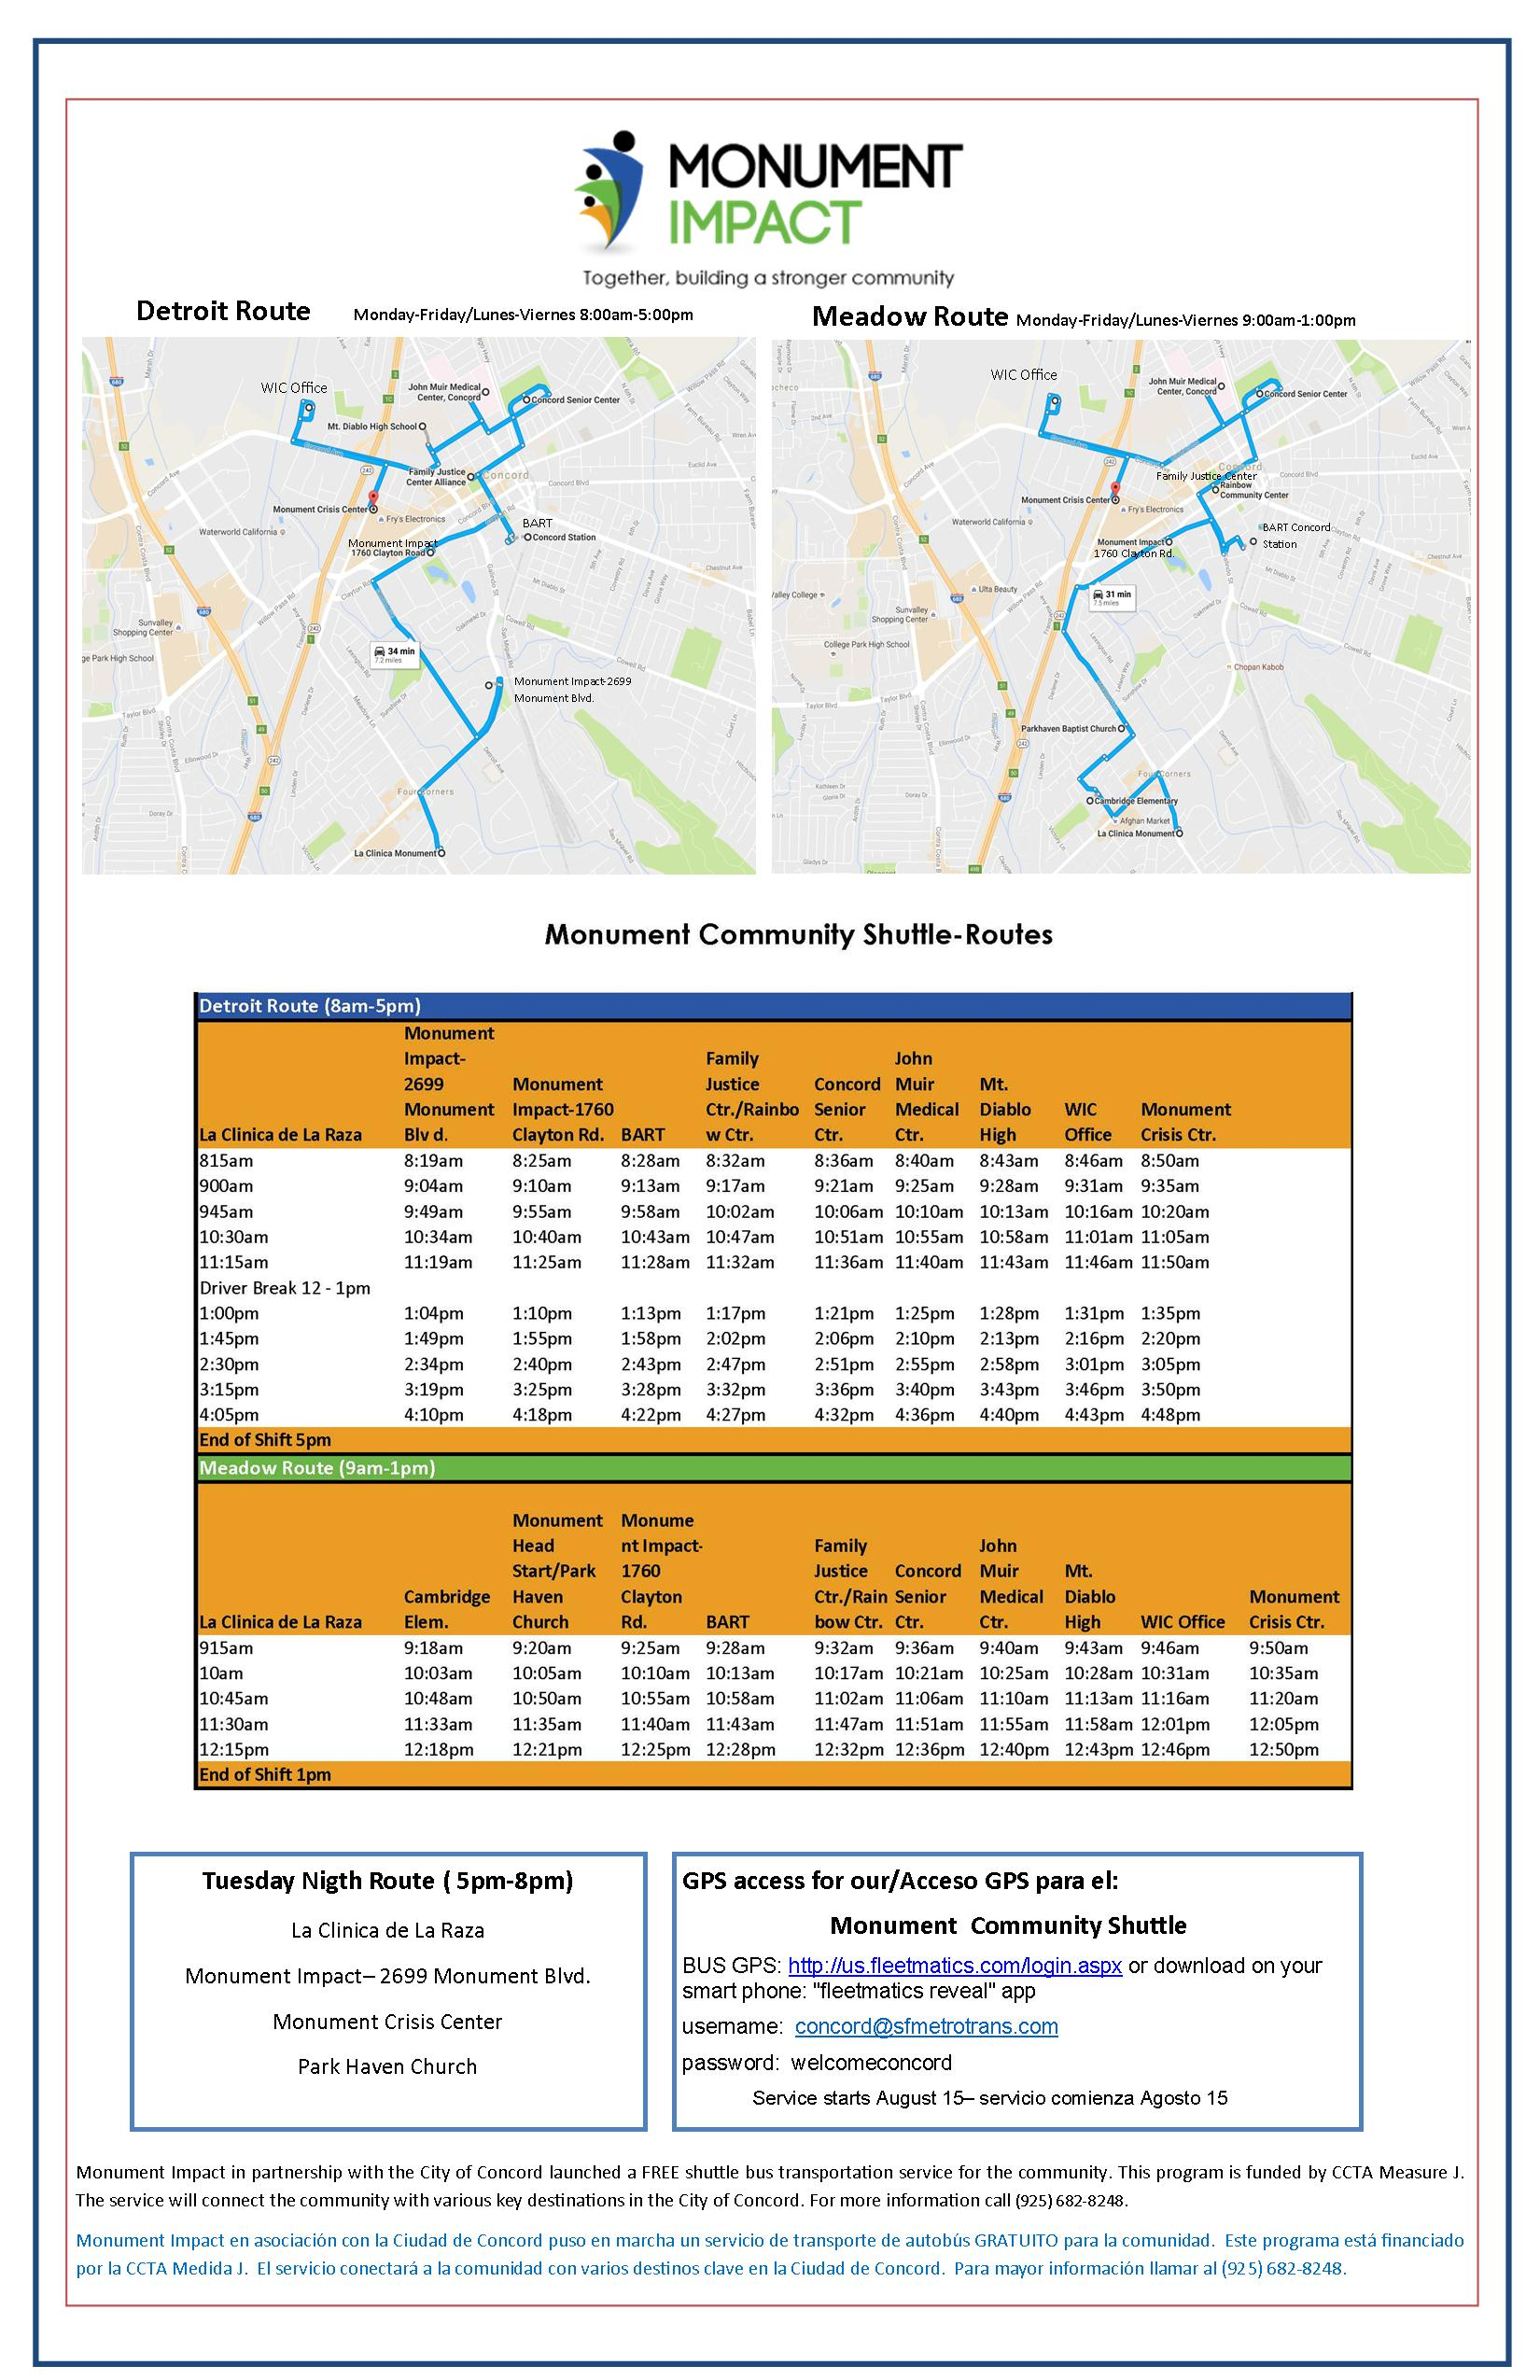 POSTER_Shuttle Project MAPS _SCHEDULES Aug 4 2016